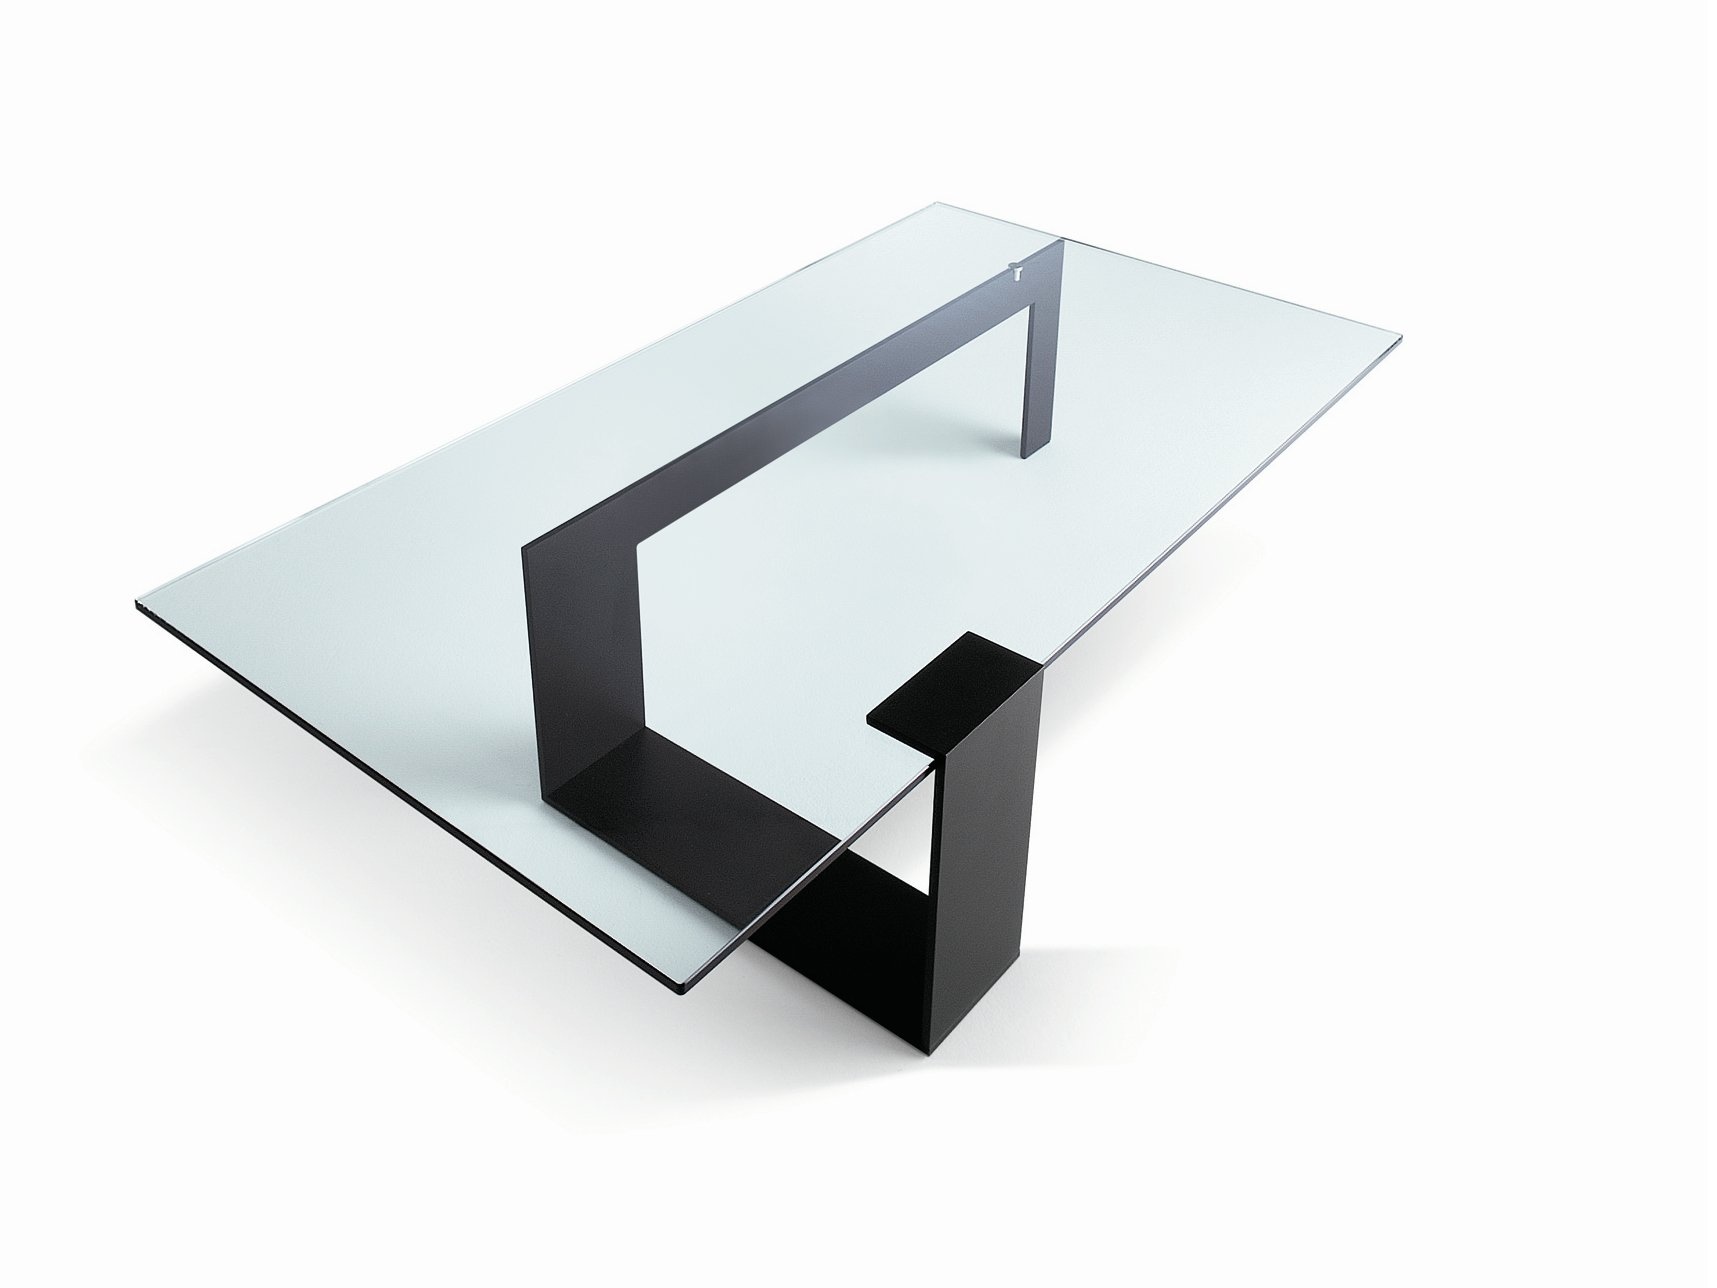 table basse en verre plinsky by t d tonelli design design giulio mancini. Black Bedroom Furniture Sets. Home Design Ideas